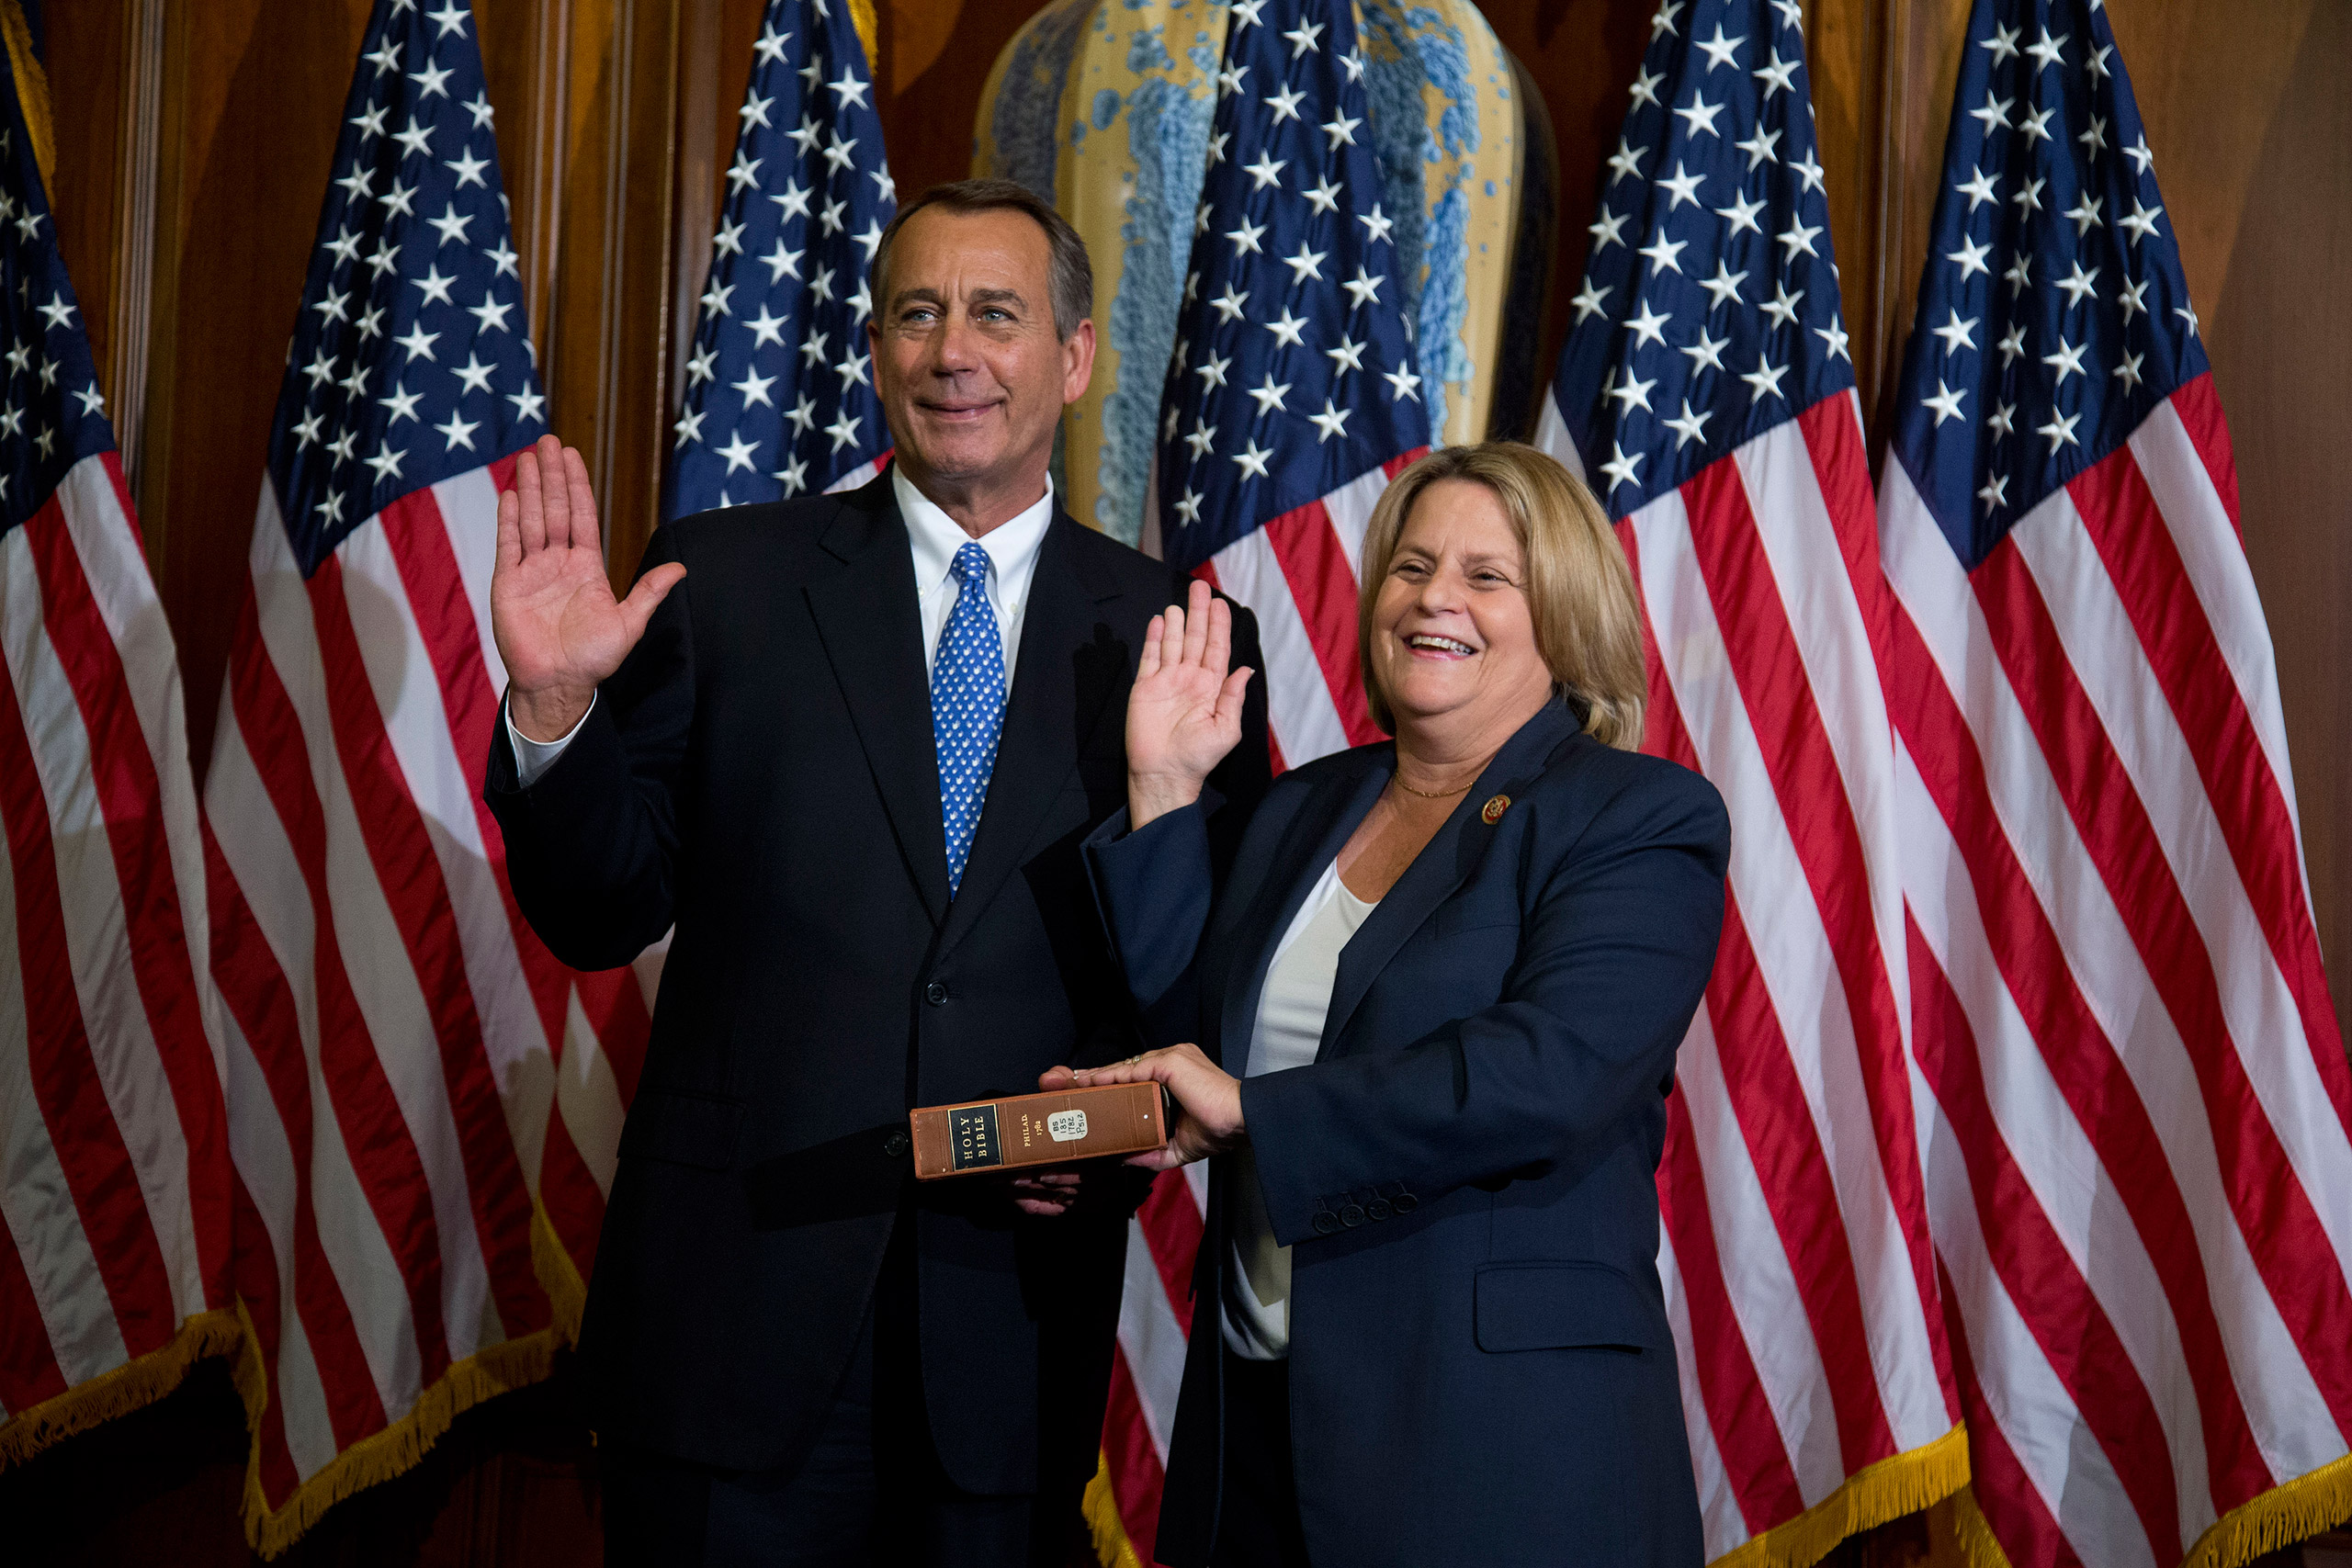 House Speaker John Boehner of Ohio performs a mock swearing in for Rep. Ileana Ros-Lehtinen, R-Fla., Thursday, Jan. 3, 2013, on Capitol Hill in Washington as the 113th Congress began.